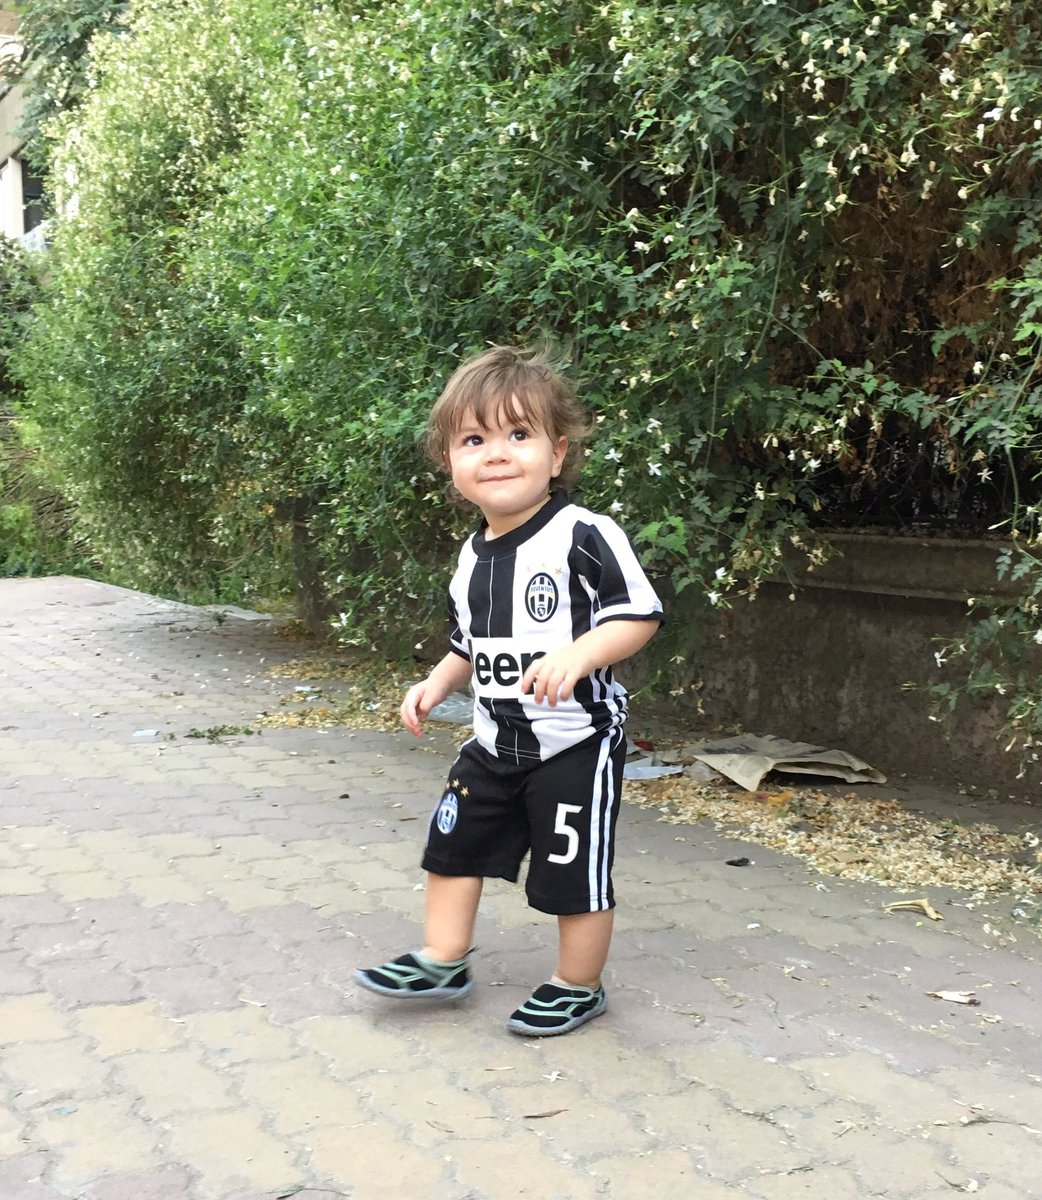 @juventusfcen and here we go, ready for the new season  from the youngest Bianconero  in #Syria #ForzaJuve <br>http://pic.twitter.com/s6IDUZKsTm